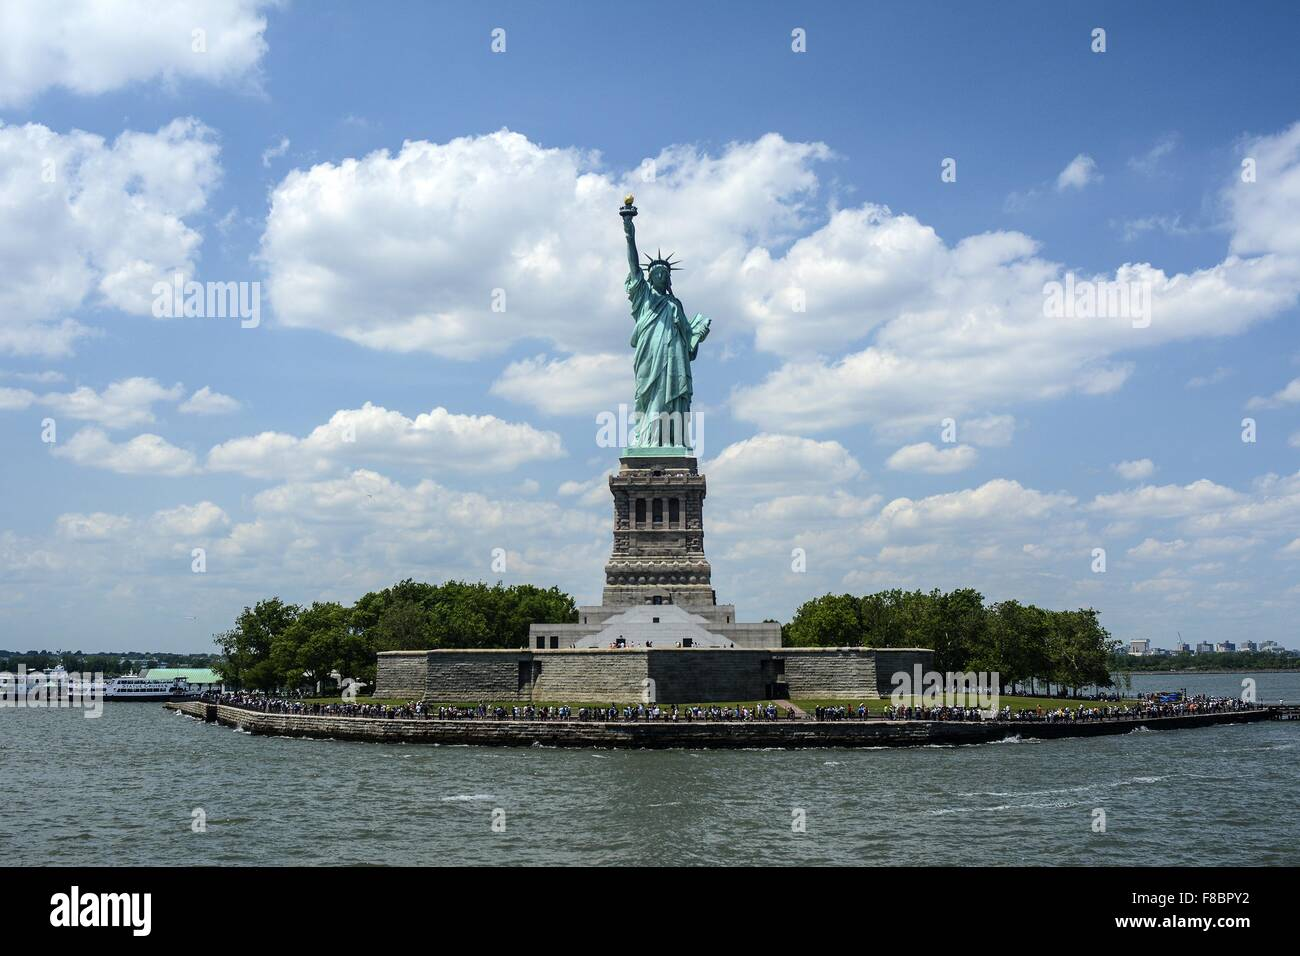 Statue of Liberty in the distance with blue sky and clouds Stock Photo